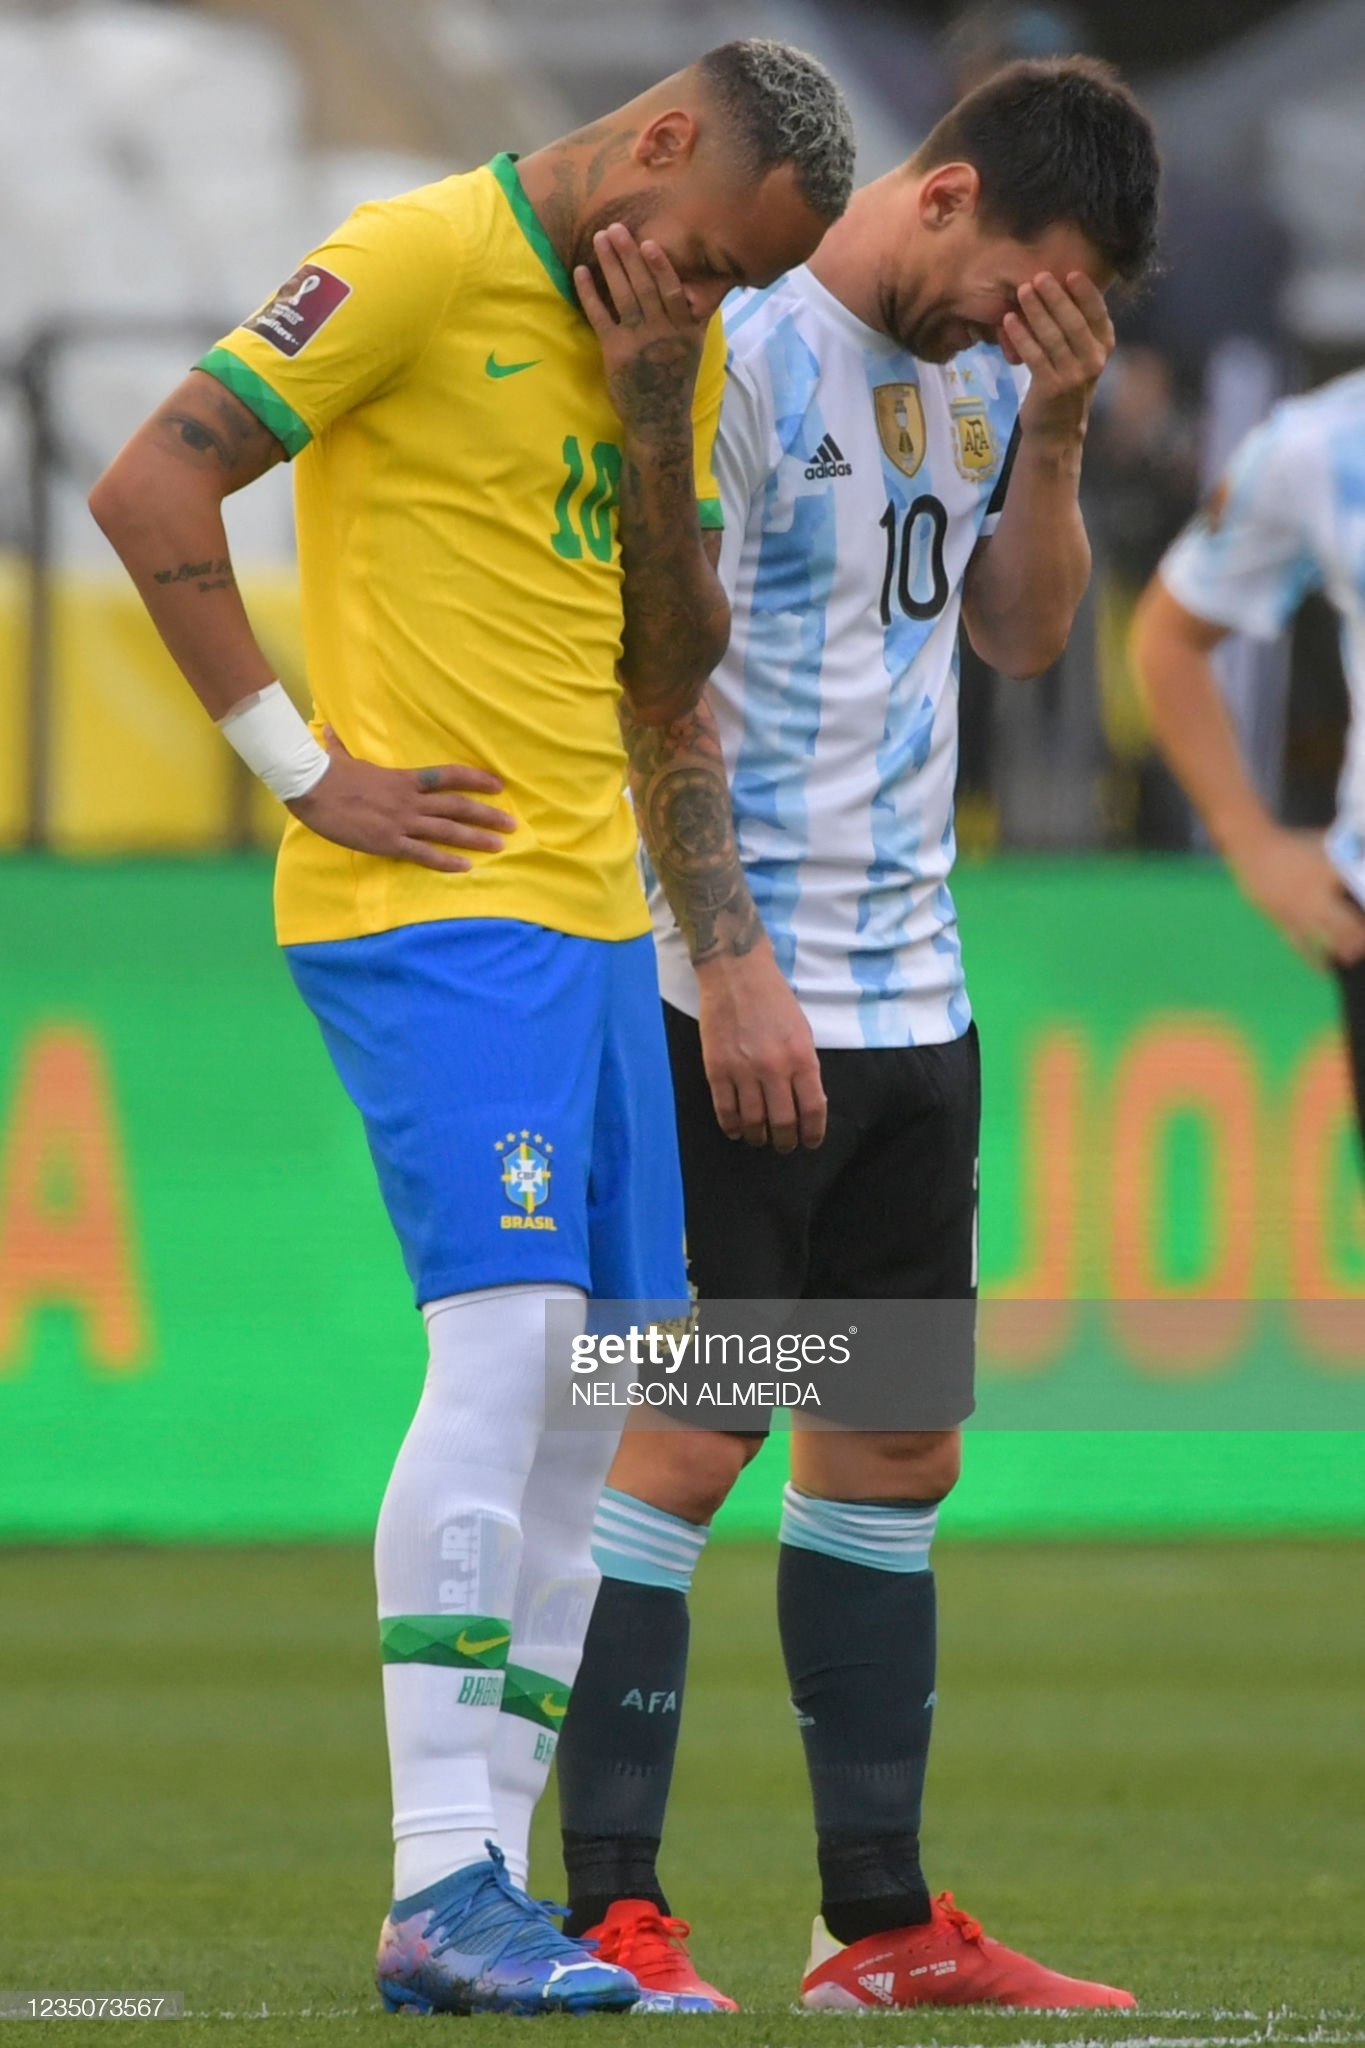 IMAGE(https://media.gettyimages.com/photos/brazils-neymar-and-argentinas-lionel-messi-talk-before-their-south-picture-id1235073567?s=2048x2048)